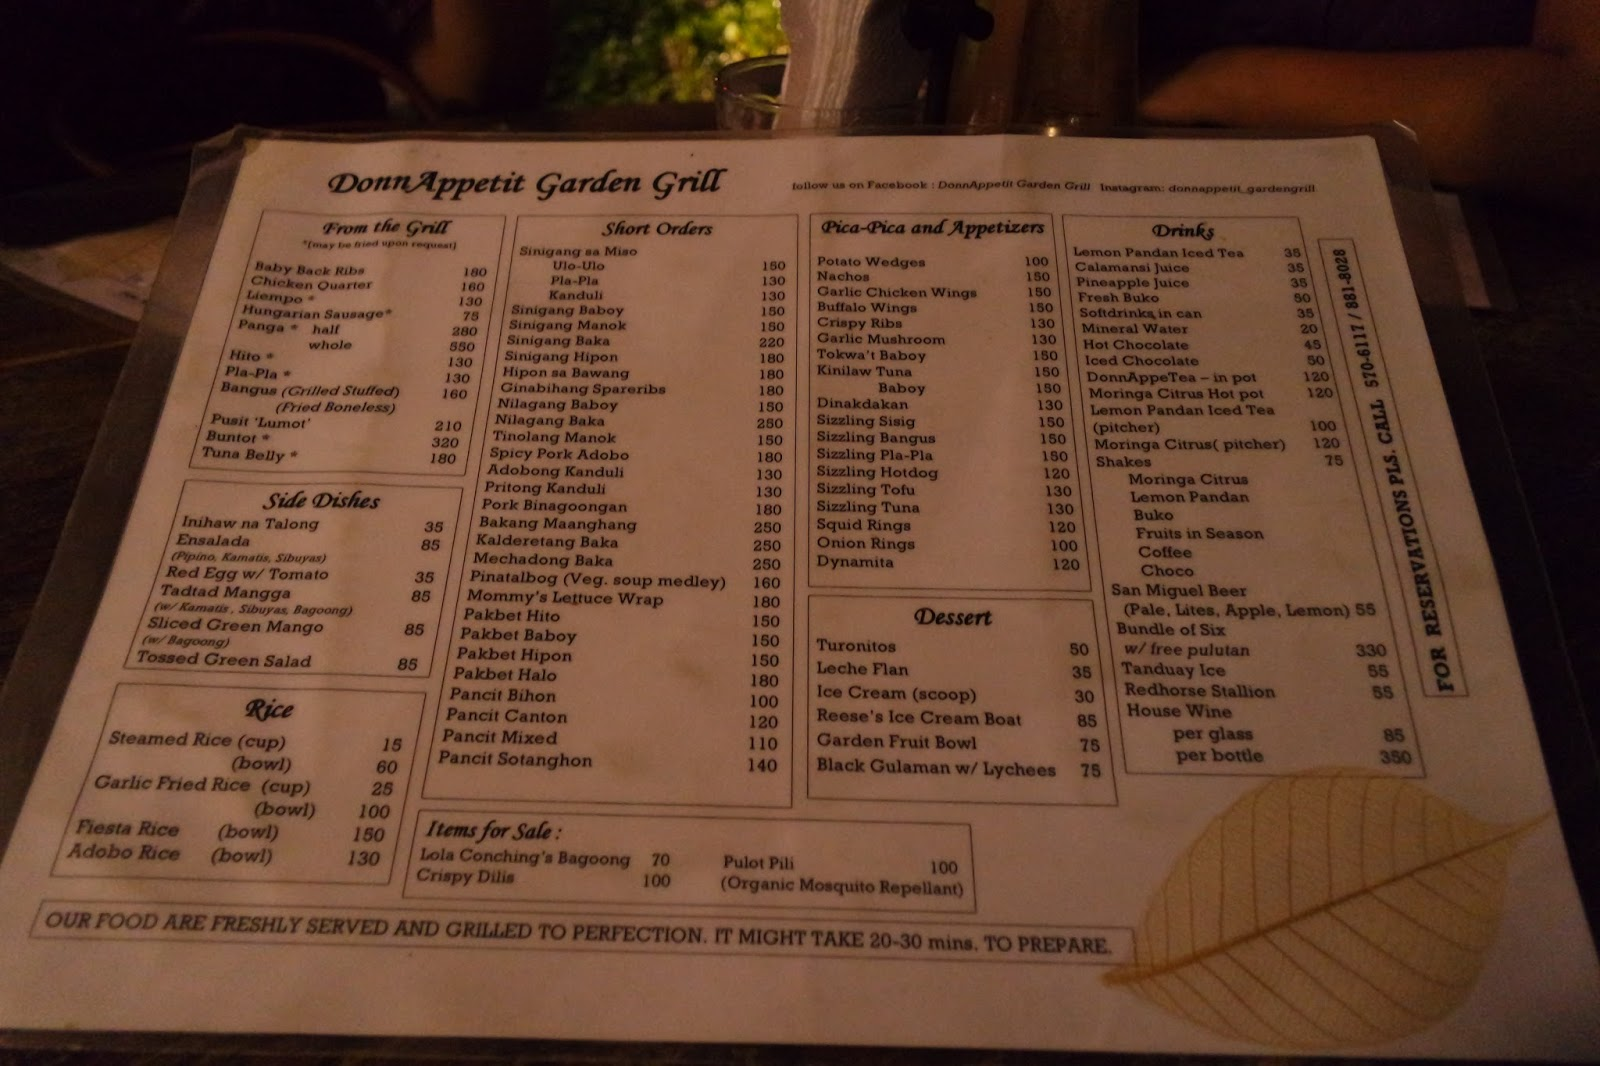 Mama Speaks: DonnAppetit Garden Grill ~ A Perfect Night Out wth My Girls